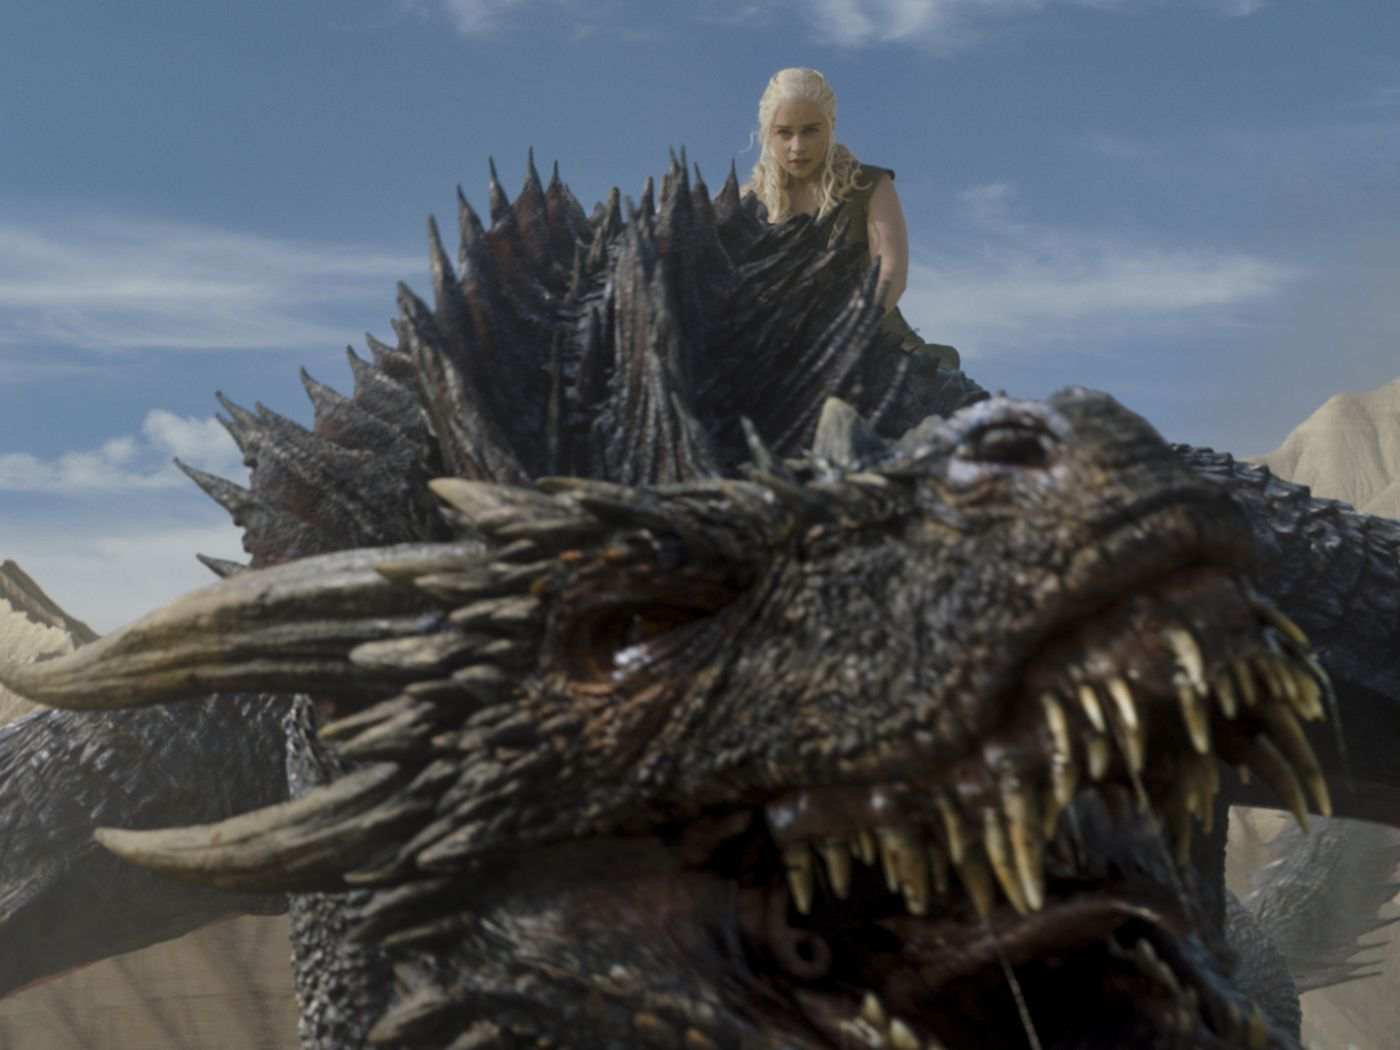 Game of Thrones could be doing so much more with its big dragon